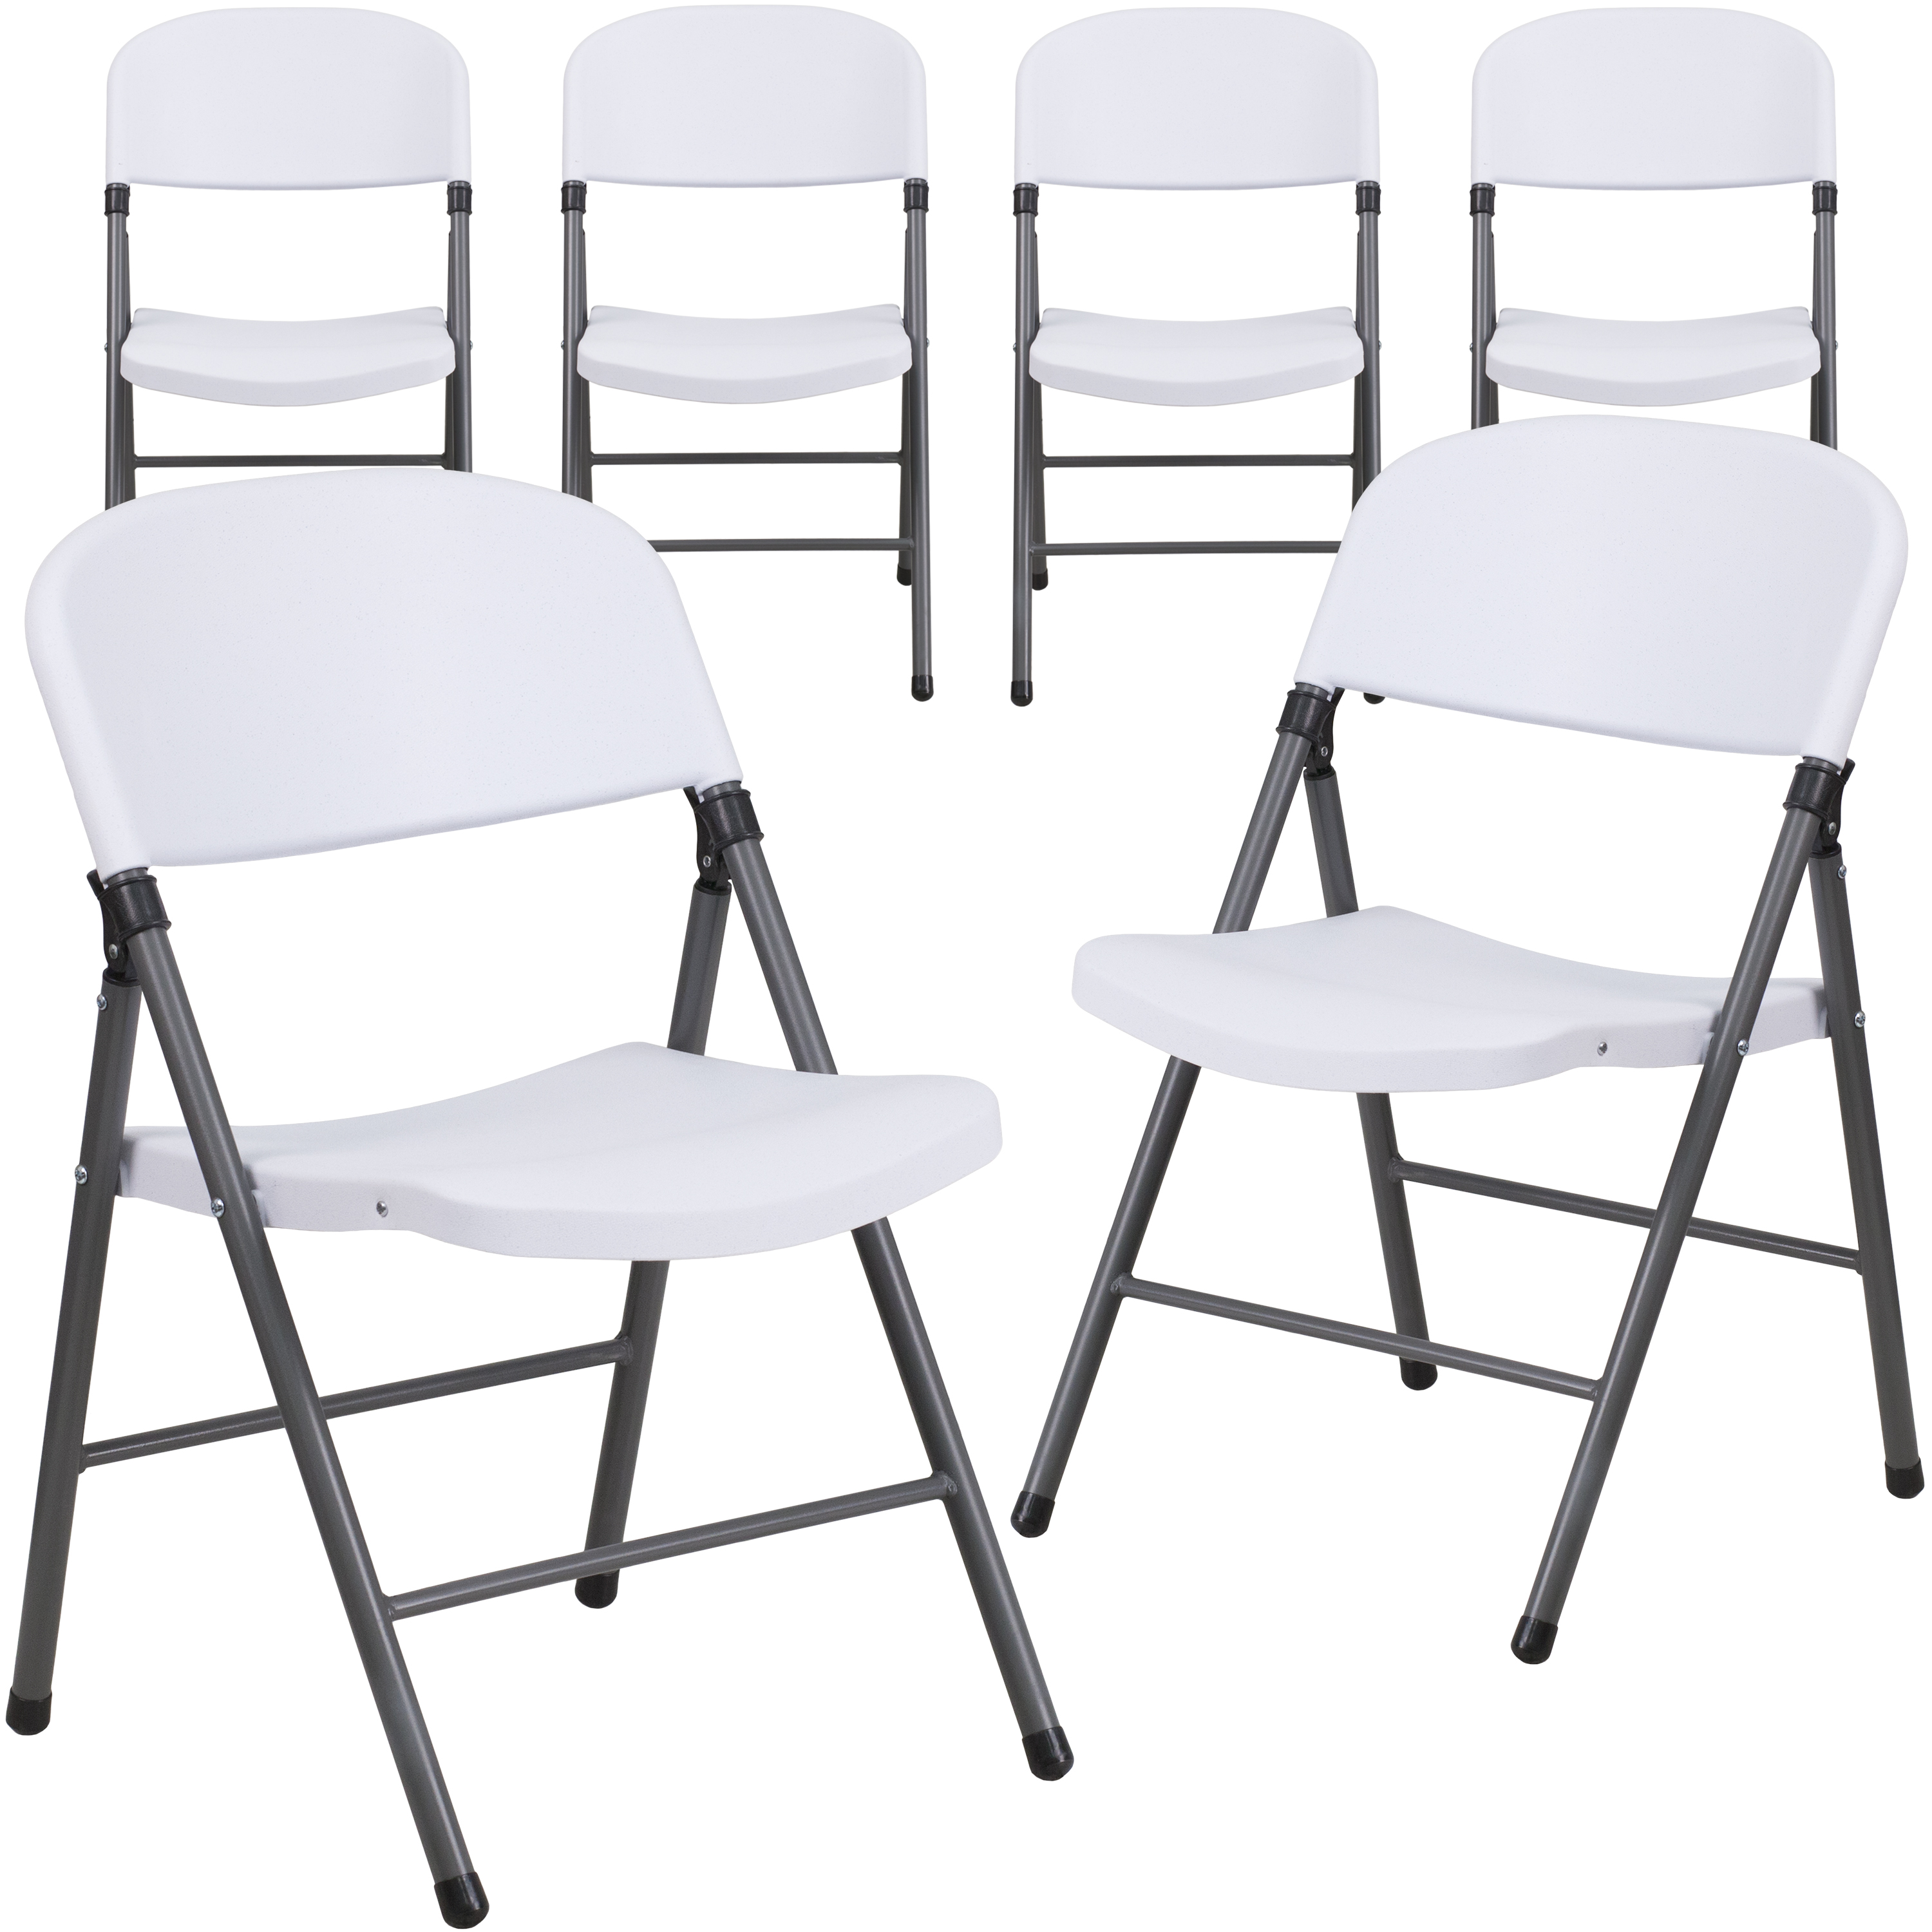 Merveilleux Flash Furniture 6 Pack HERCULES Series 330 Lb Capacity White Plastic  Folding Chair With Charcoal Frame   Walmart.com